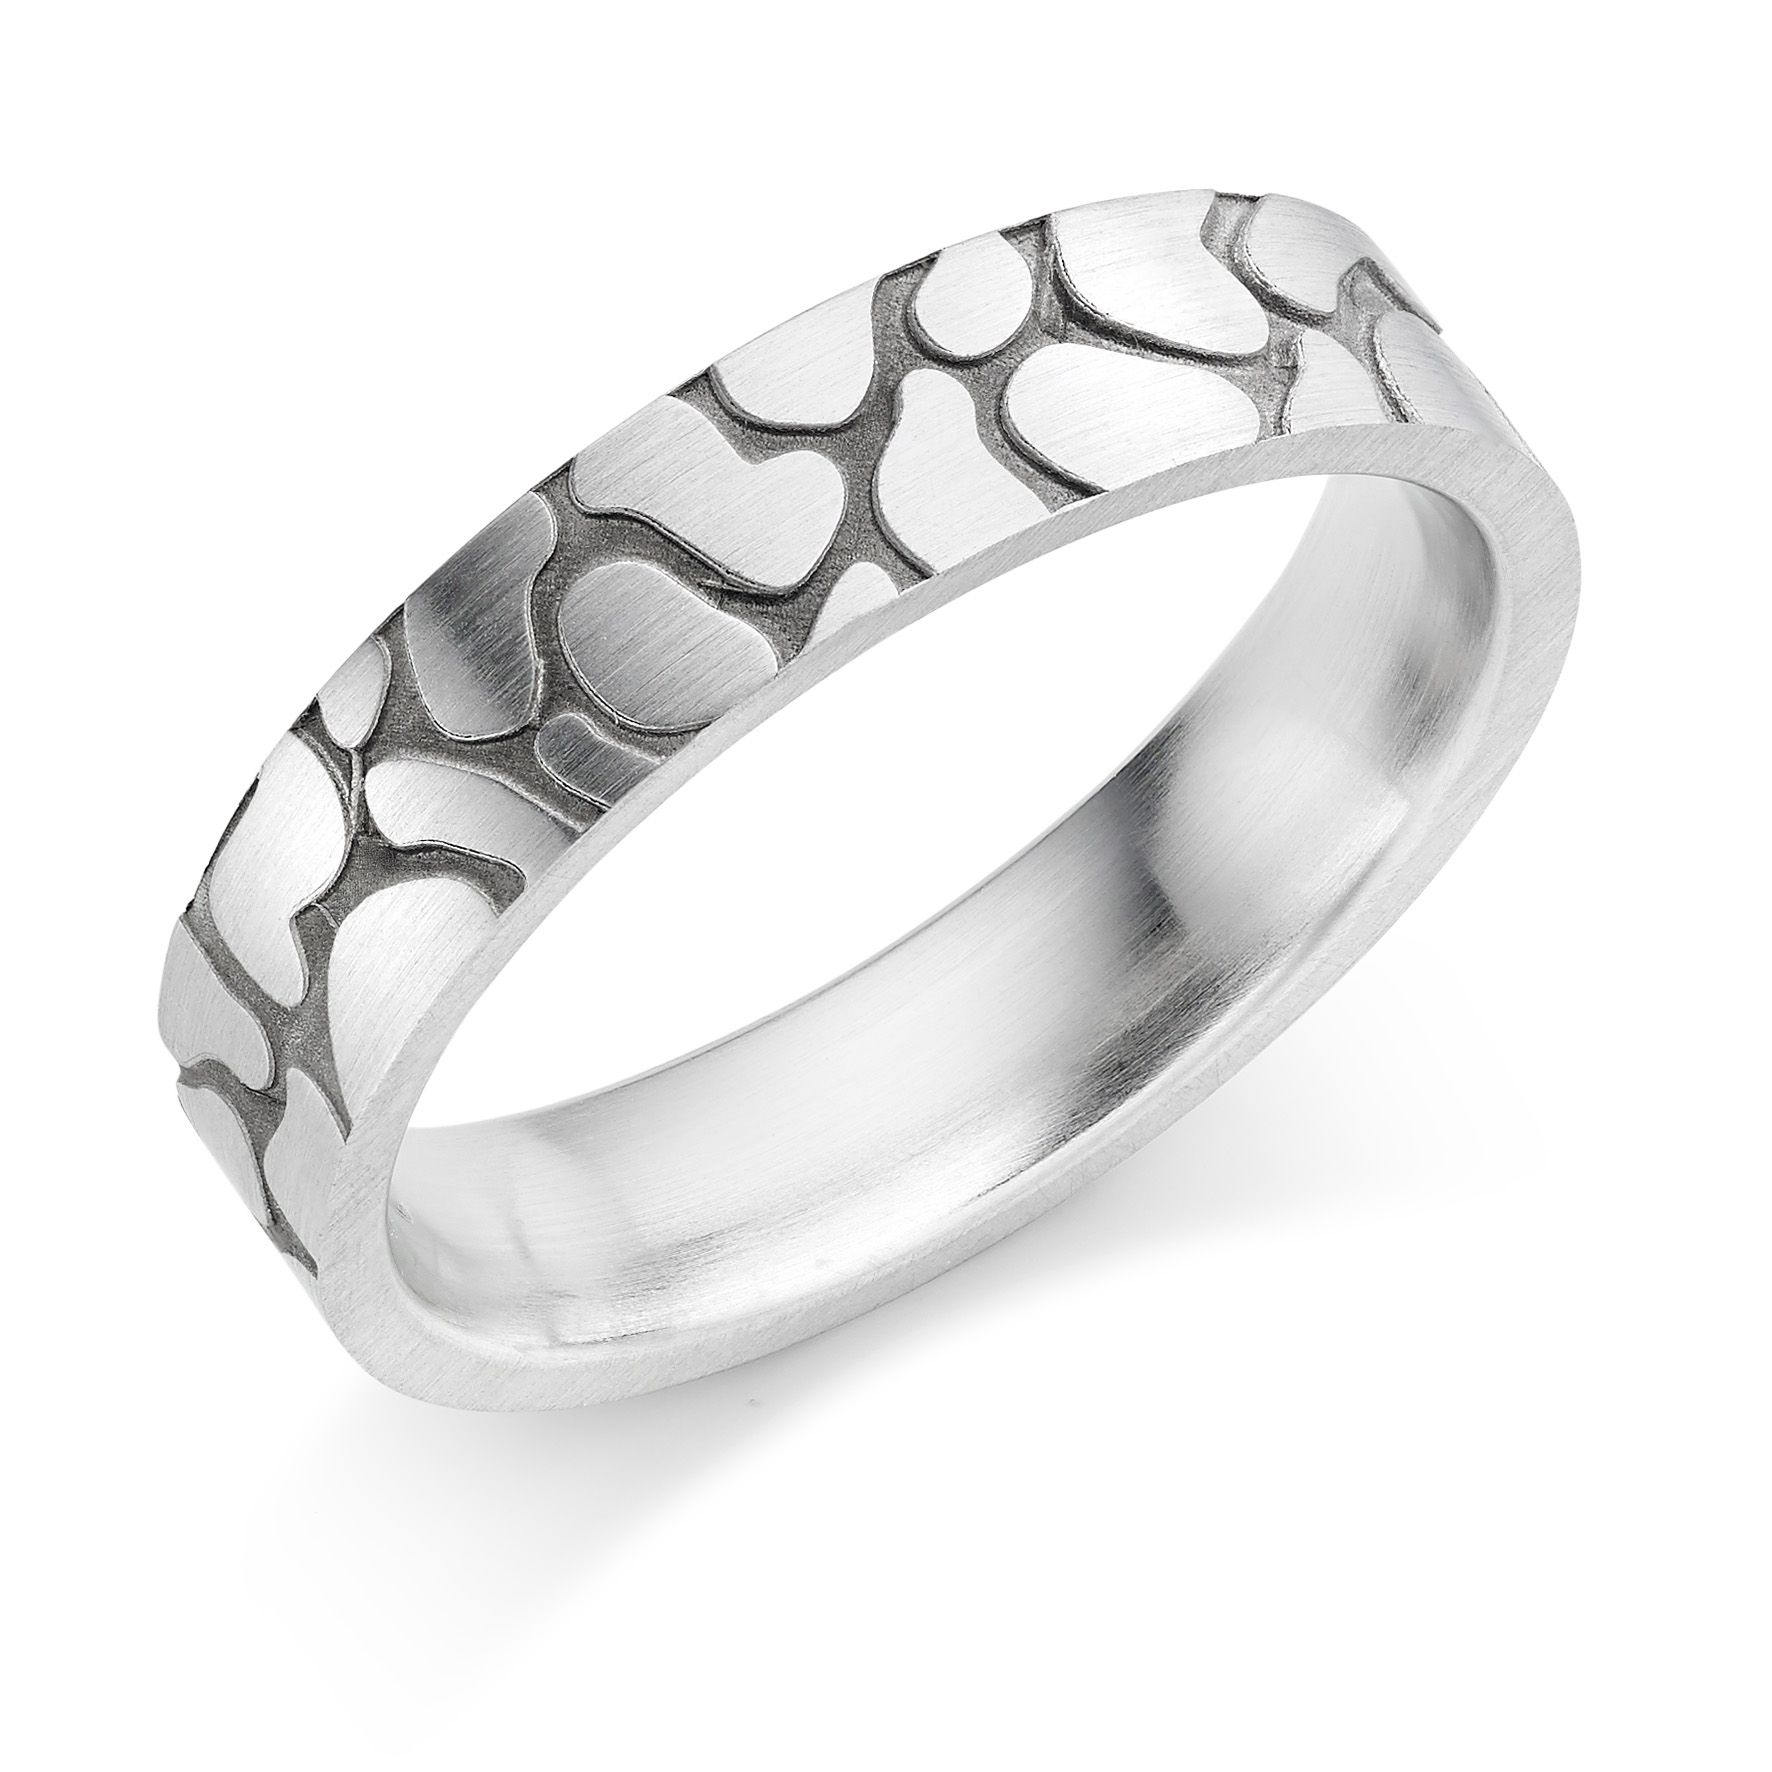 Our Platinum 5mm Claree wedding ring is a popular choice for those who fancy something a little more contemporary.  Its broken leather design with a blackened inlay is sure to stand out from the crowd!  http://www.rennieco.com/platinum-5mm-claree-wedding-ring.html  #wedding #ring #weddingring #platinum #jewellery #HattonGarden